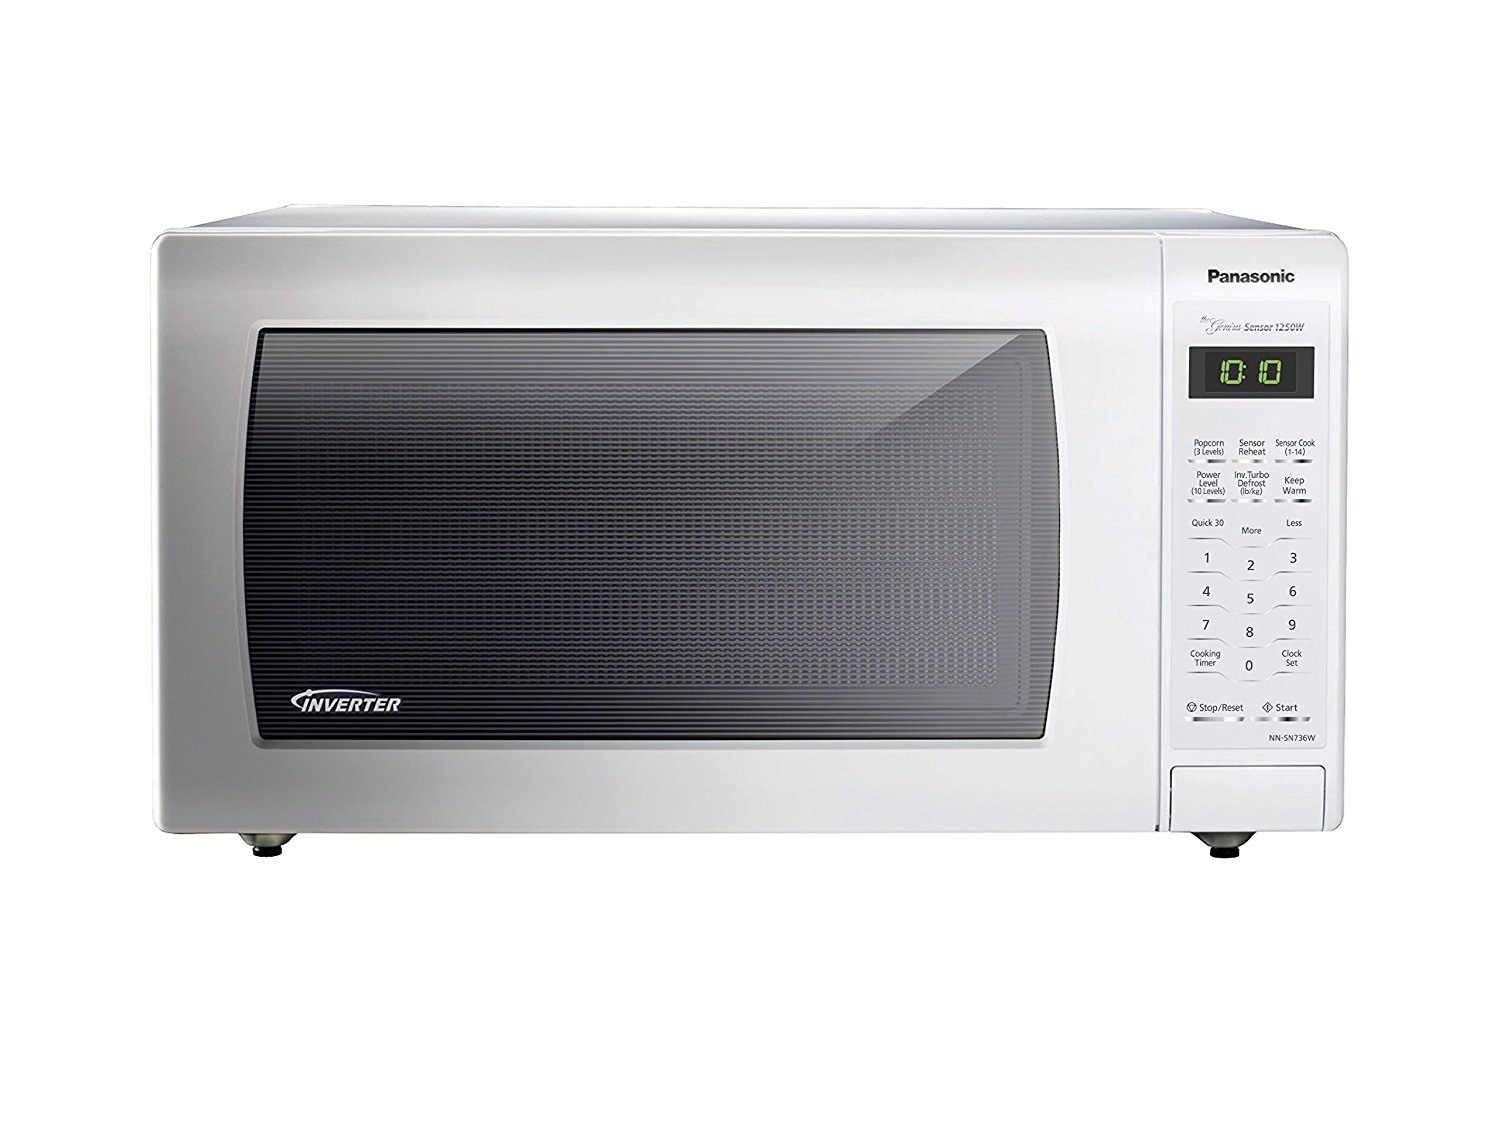 Microwave Oven Compact Countertop Panasonic Electric White 1250 Watt 1.6 cu. ft. Inverter Cookware